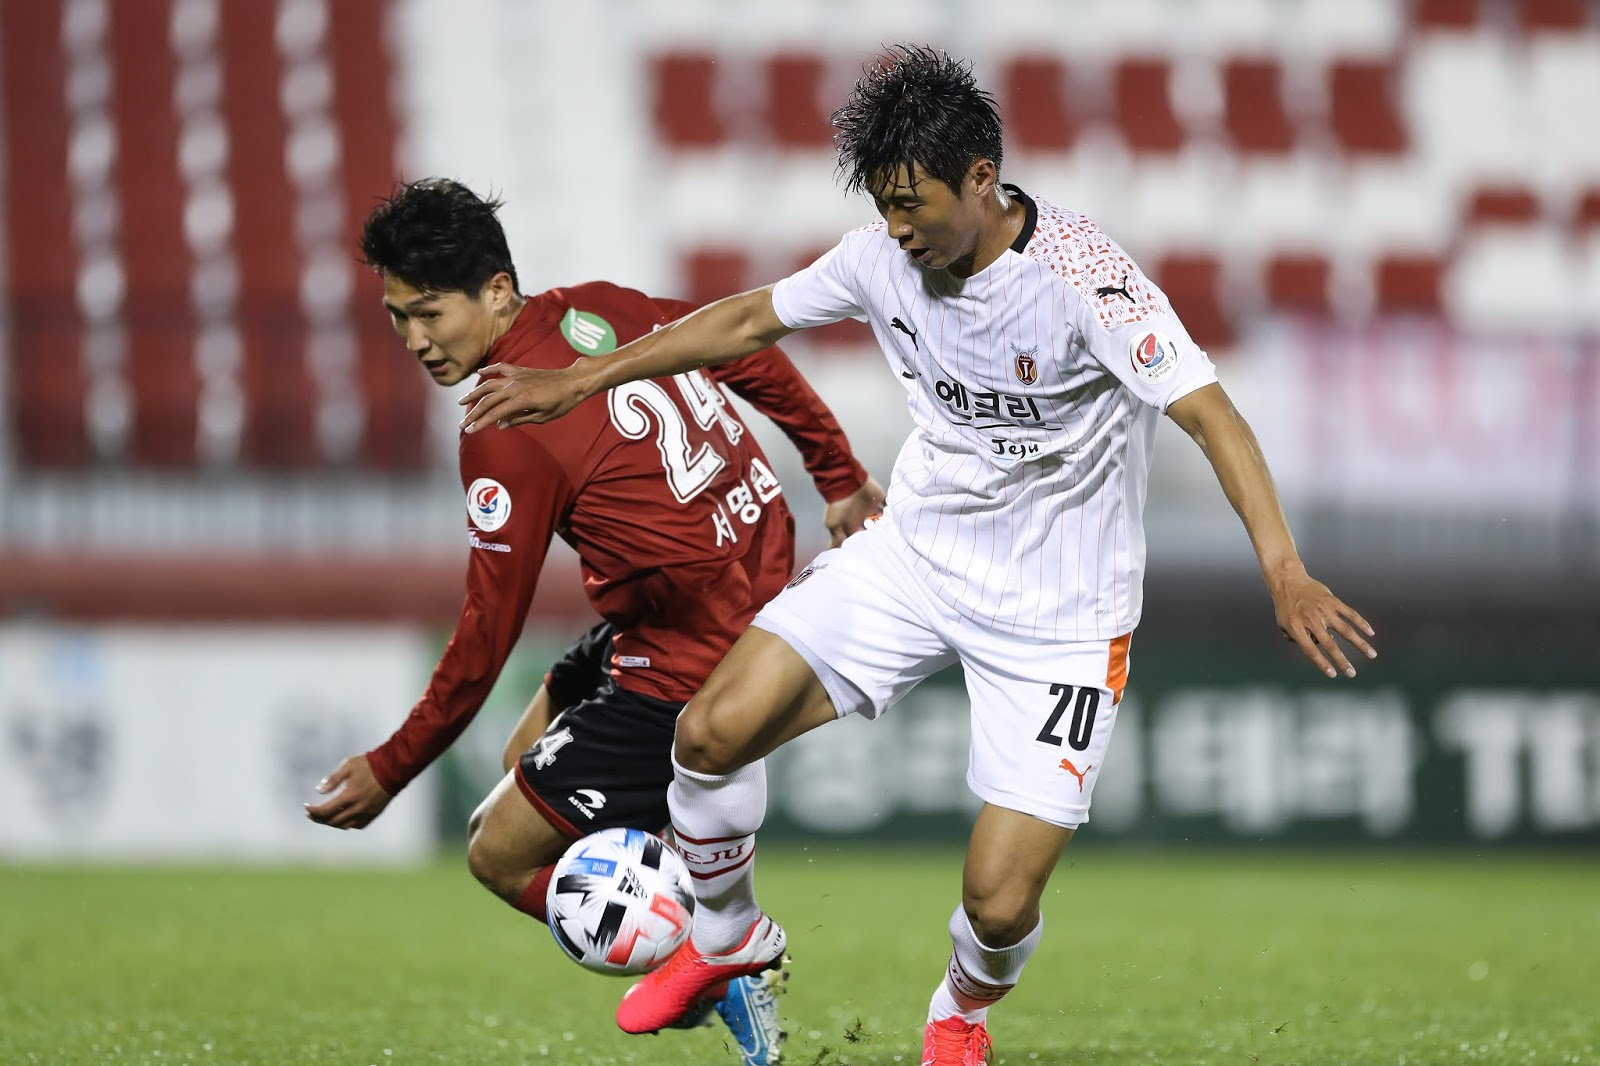 Lim Dong-hyuk in action against his former team. Bucheon FC 1995 vs Jeju United 05.26.20